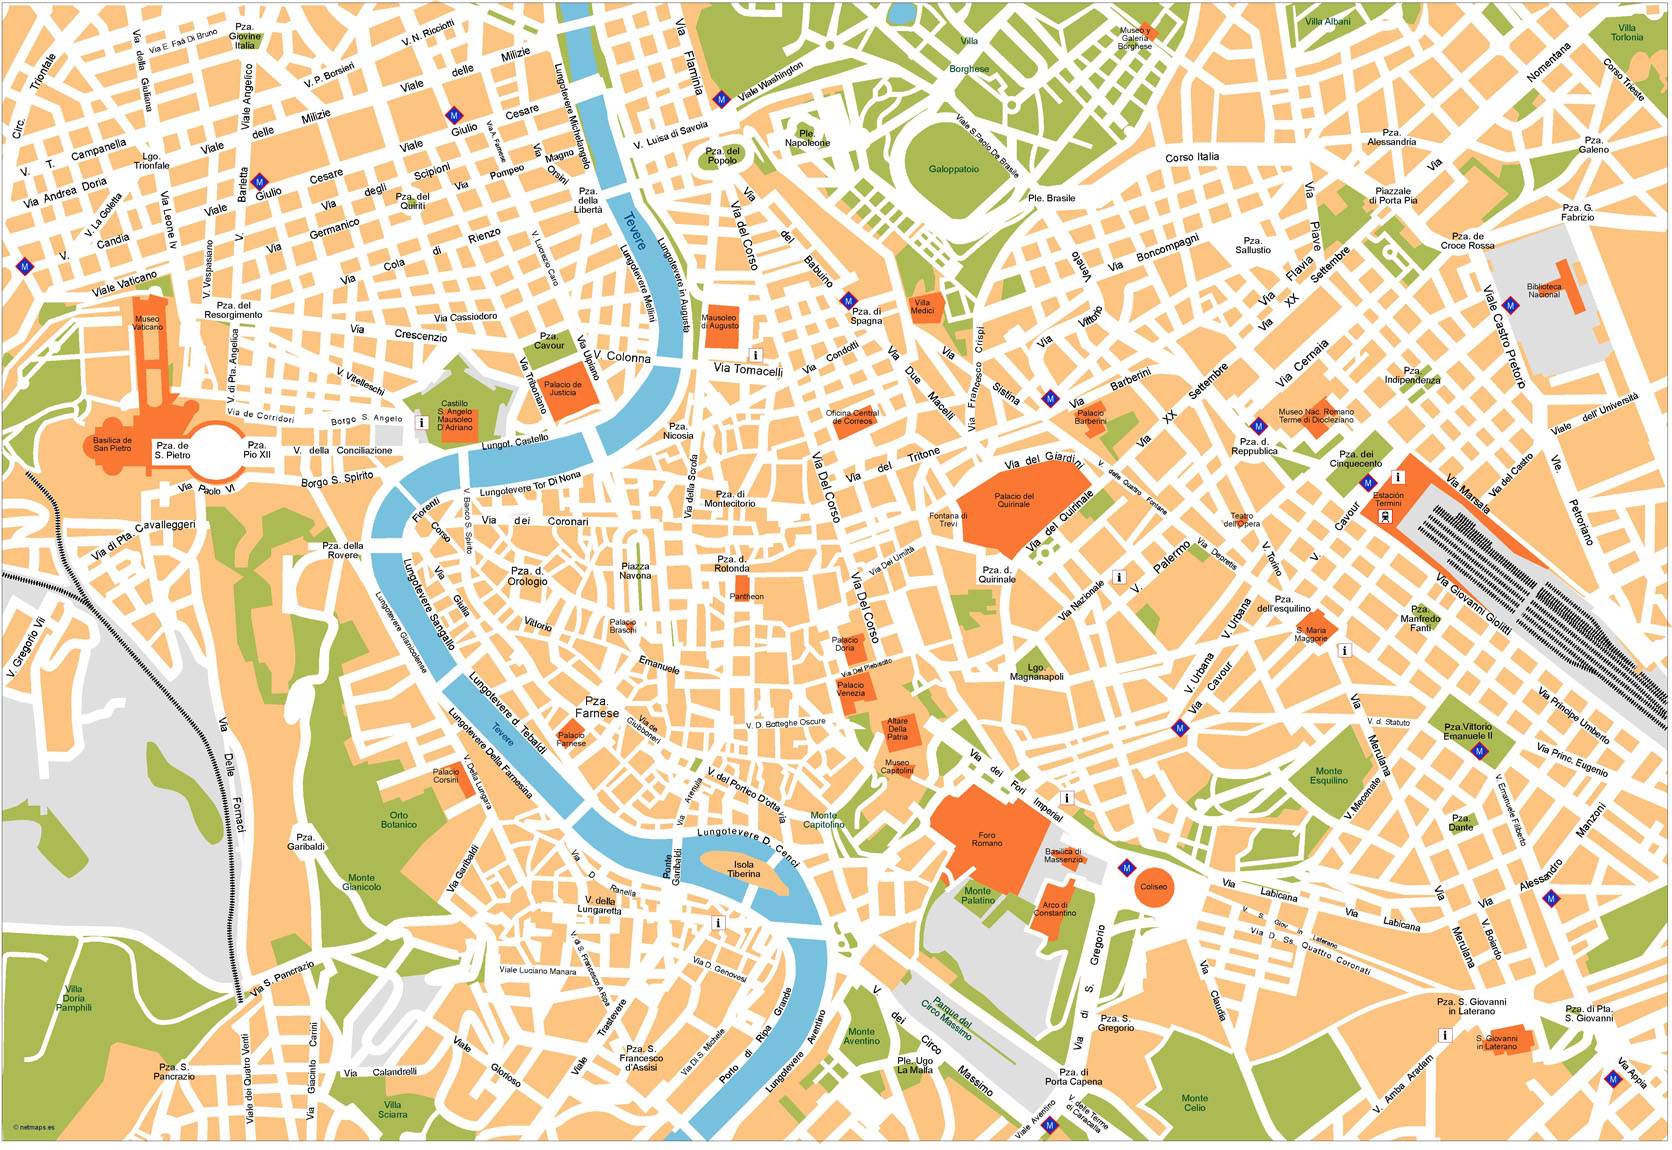 Download Roma Vector Maps As Digital File Purchase Online Our - Rome map download